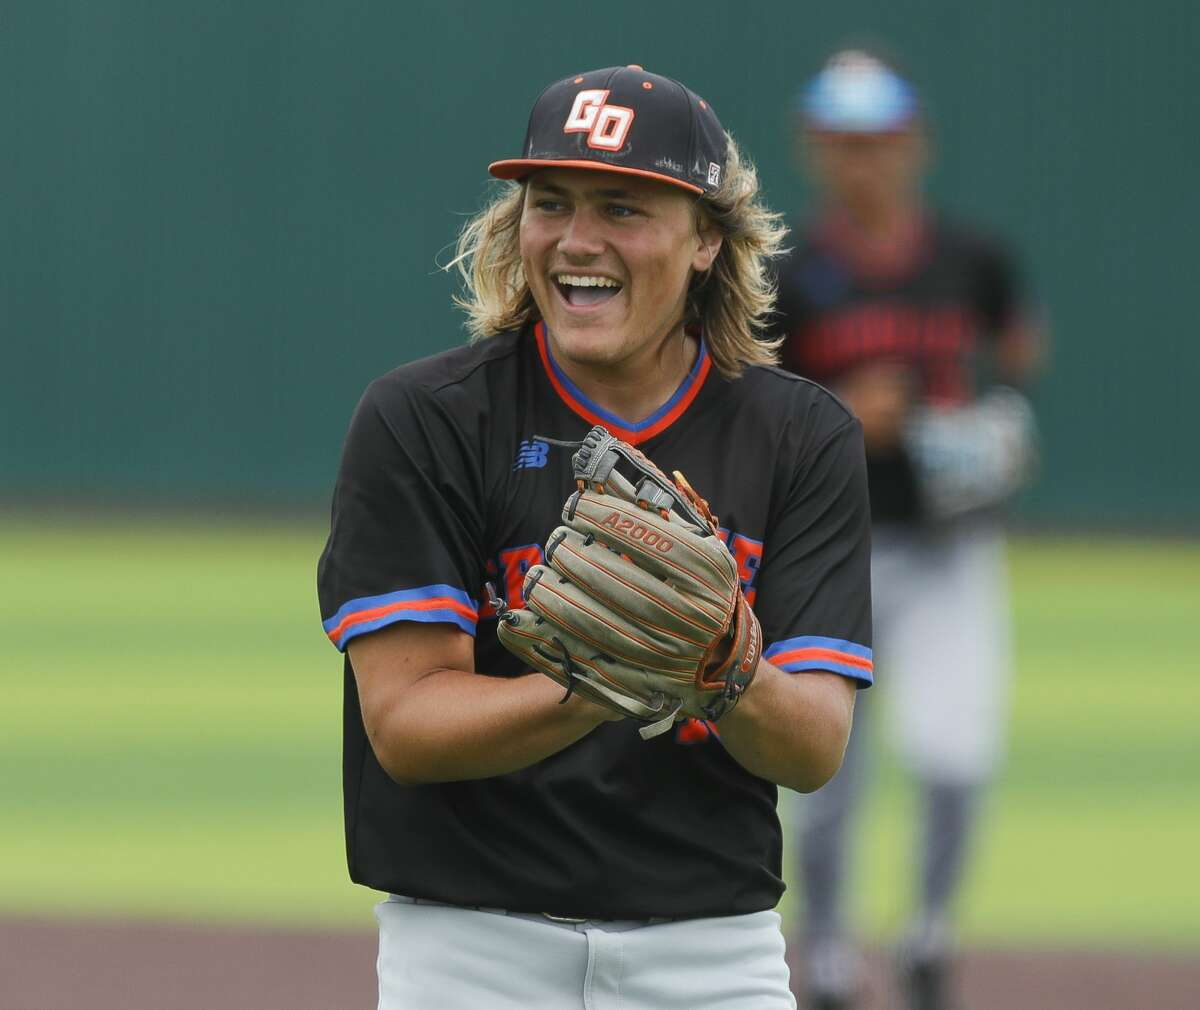 Grand Oaks starting pitcher Hudson Hamilton (19) reacts after a play by catcher Preston Havenor to end the fifth inning of a Region II-6A area high school playoff game at Tomball Memorial High School, Saturday, May 15, 2021, in Tomball.